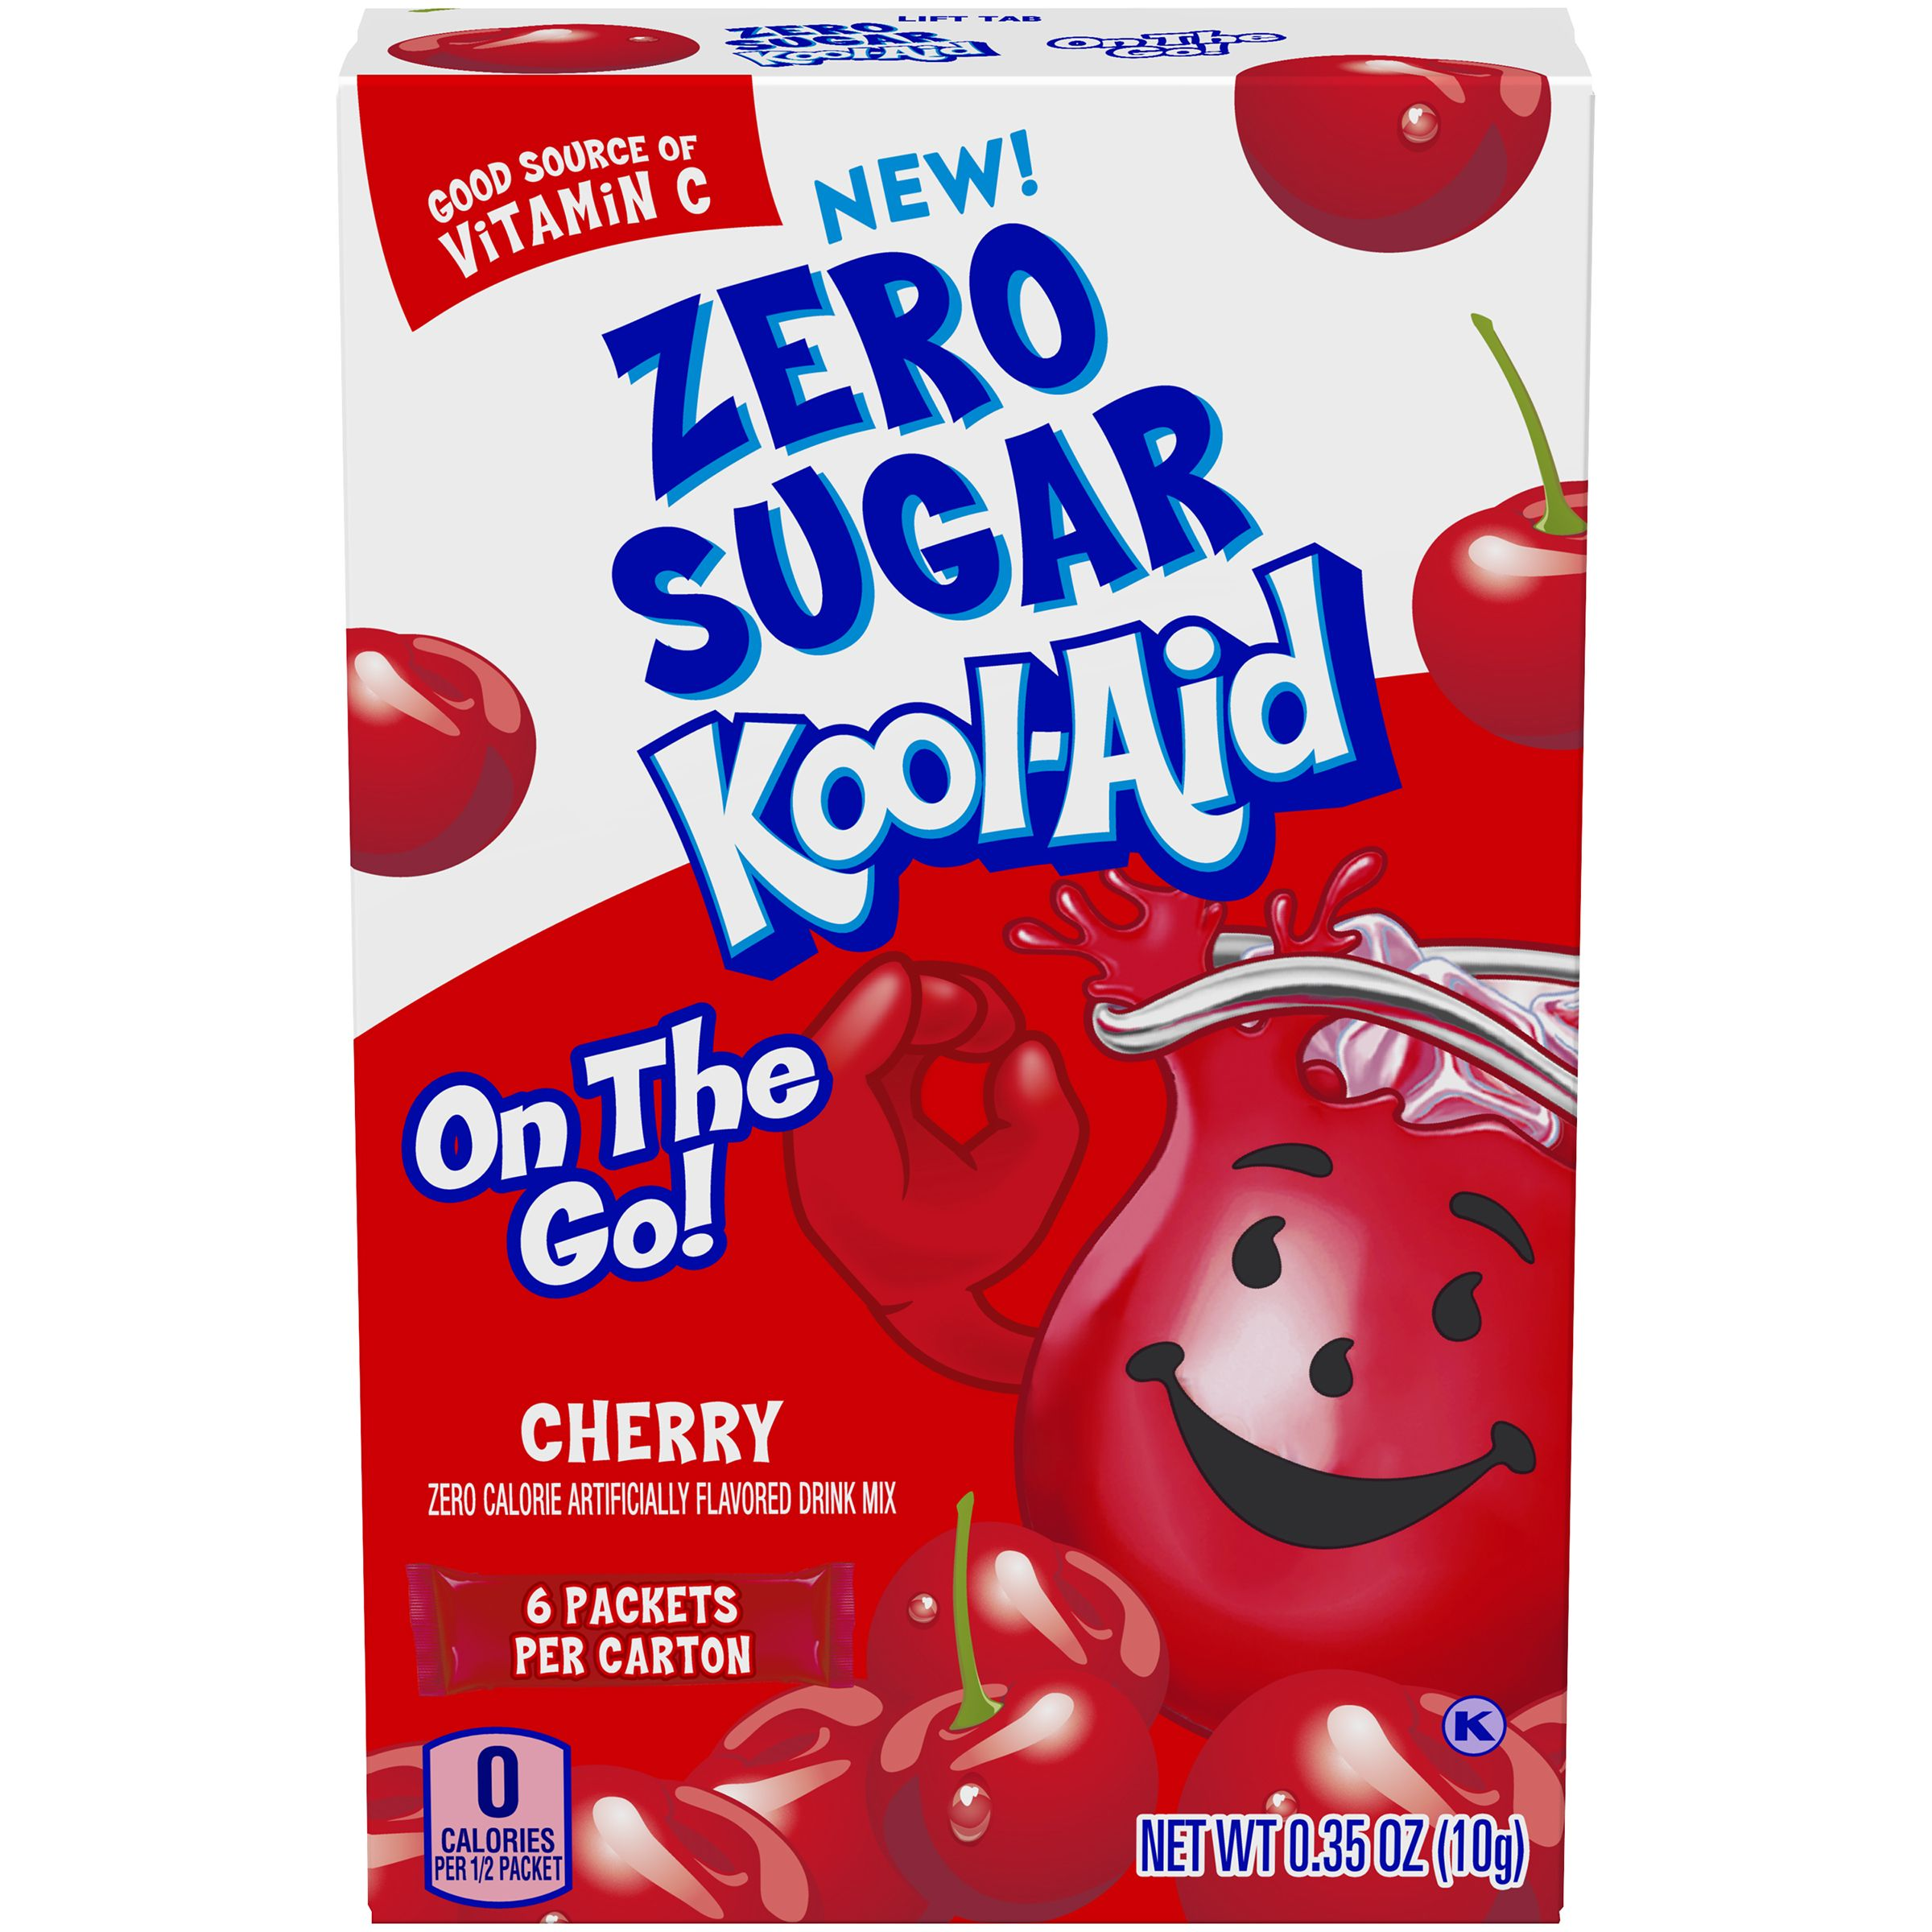 Kool Aid On The Go Sugar Free Cherry Drink Mix 0 35 Oz Box 6 Ct Packets Kool Aid Cherry Drink Kool Aid Mixed Drinks